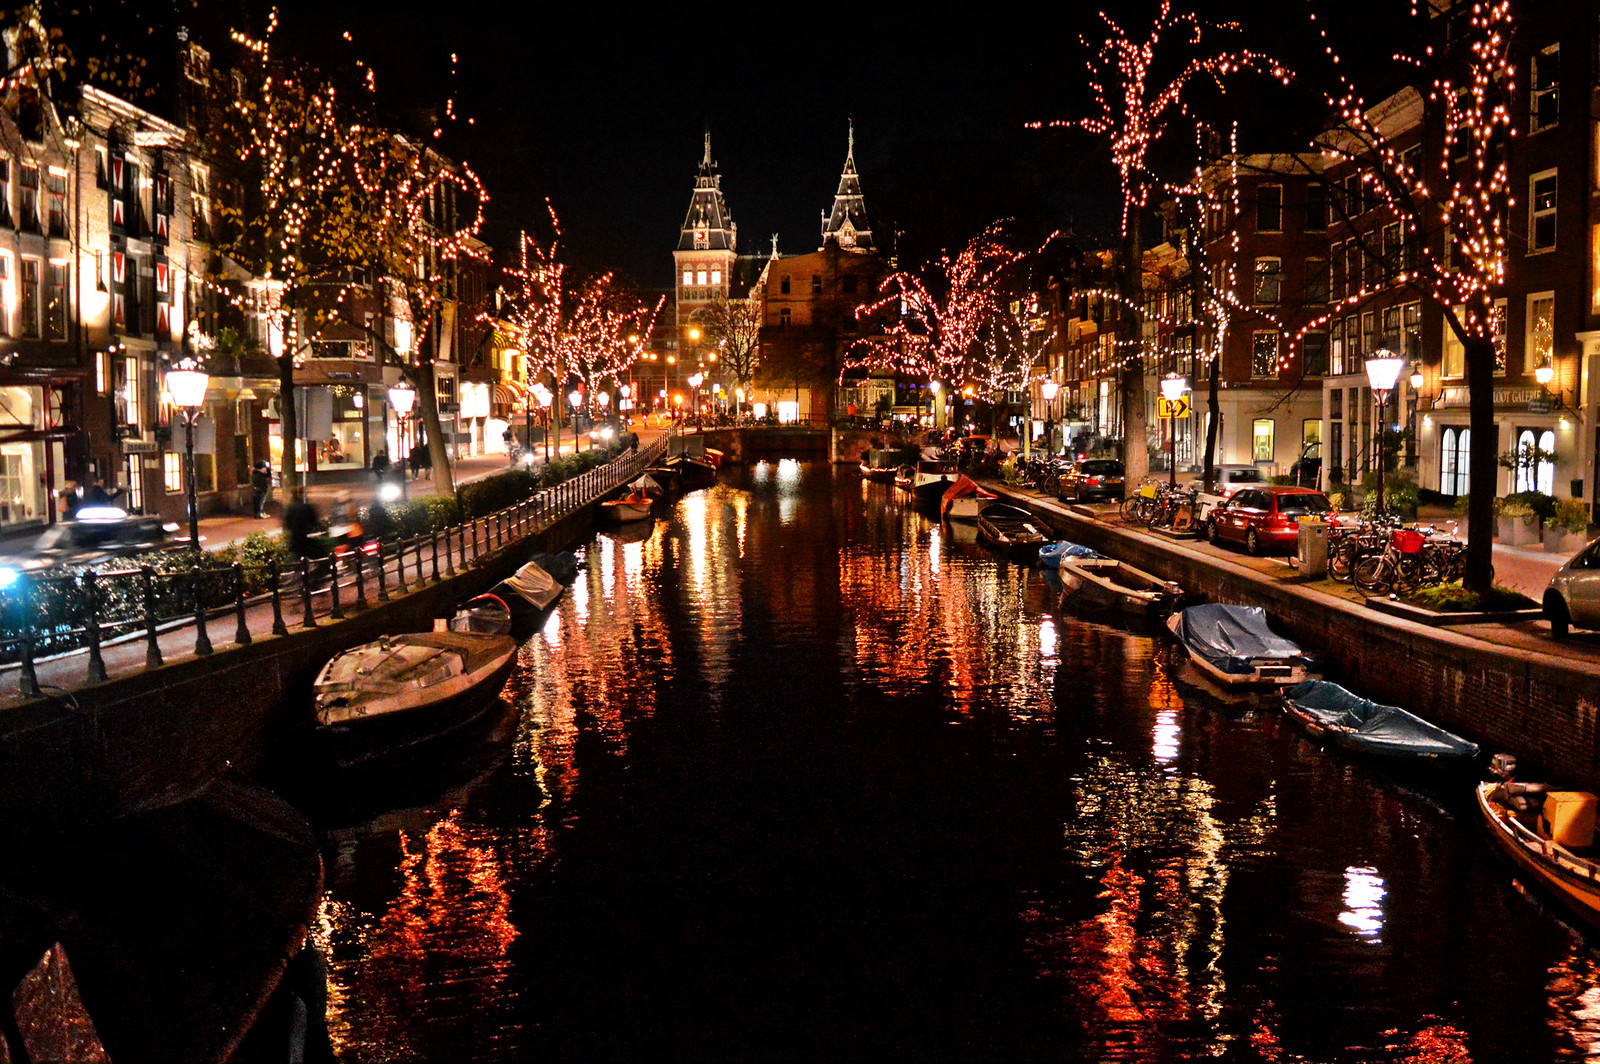 Spiegelgracht in December